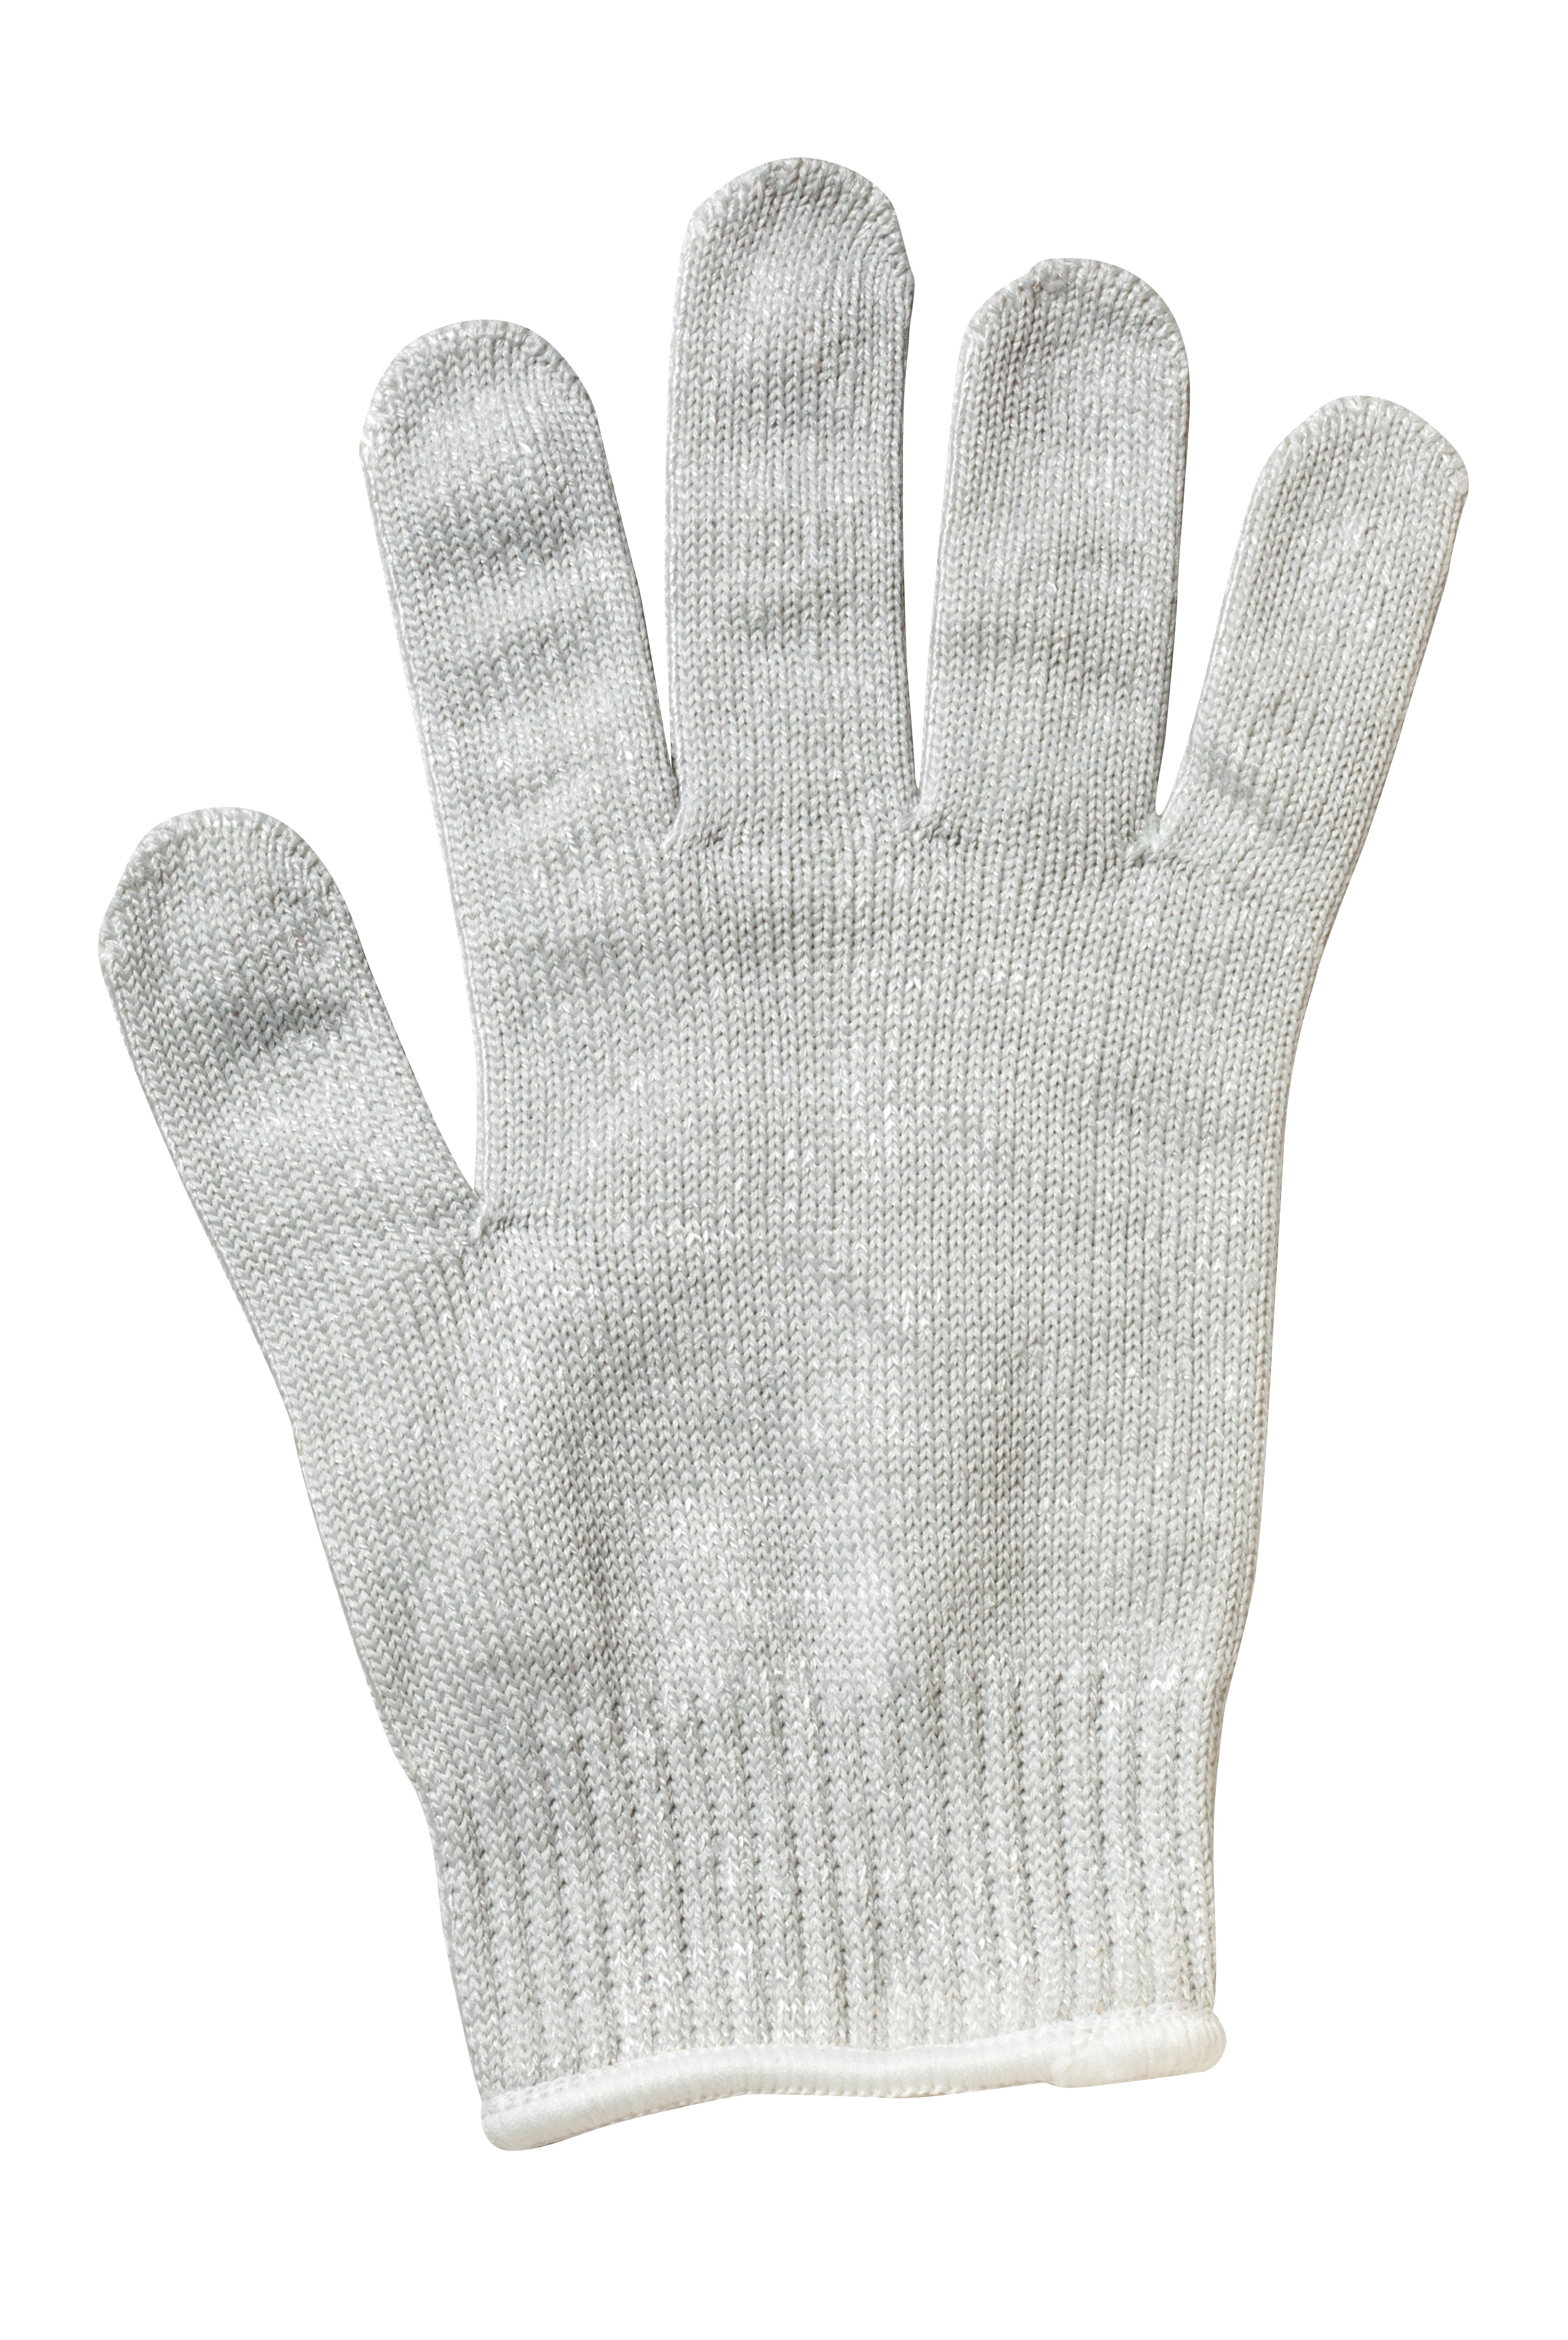 Mercer Culinary M33413L glove, cut resistant